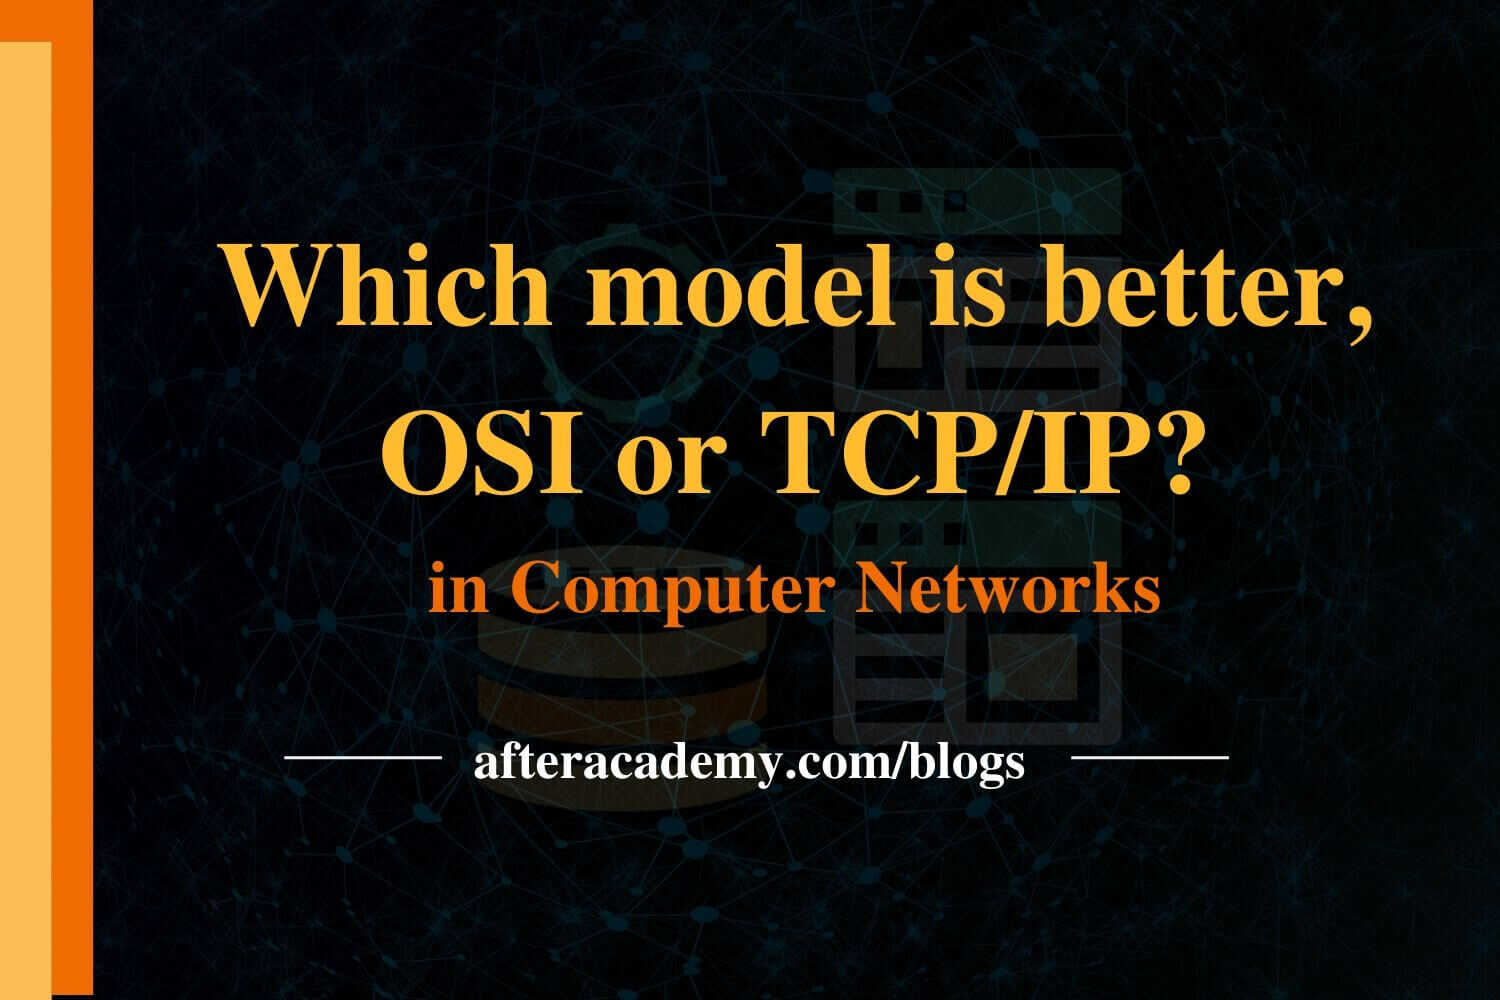 Which model is better, OSI or TCP/IP?